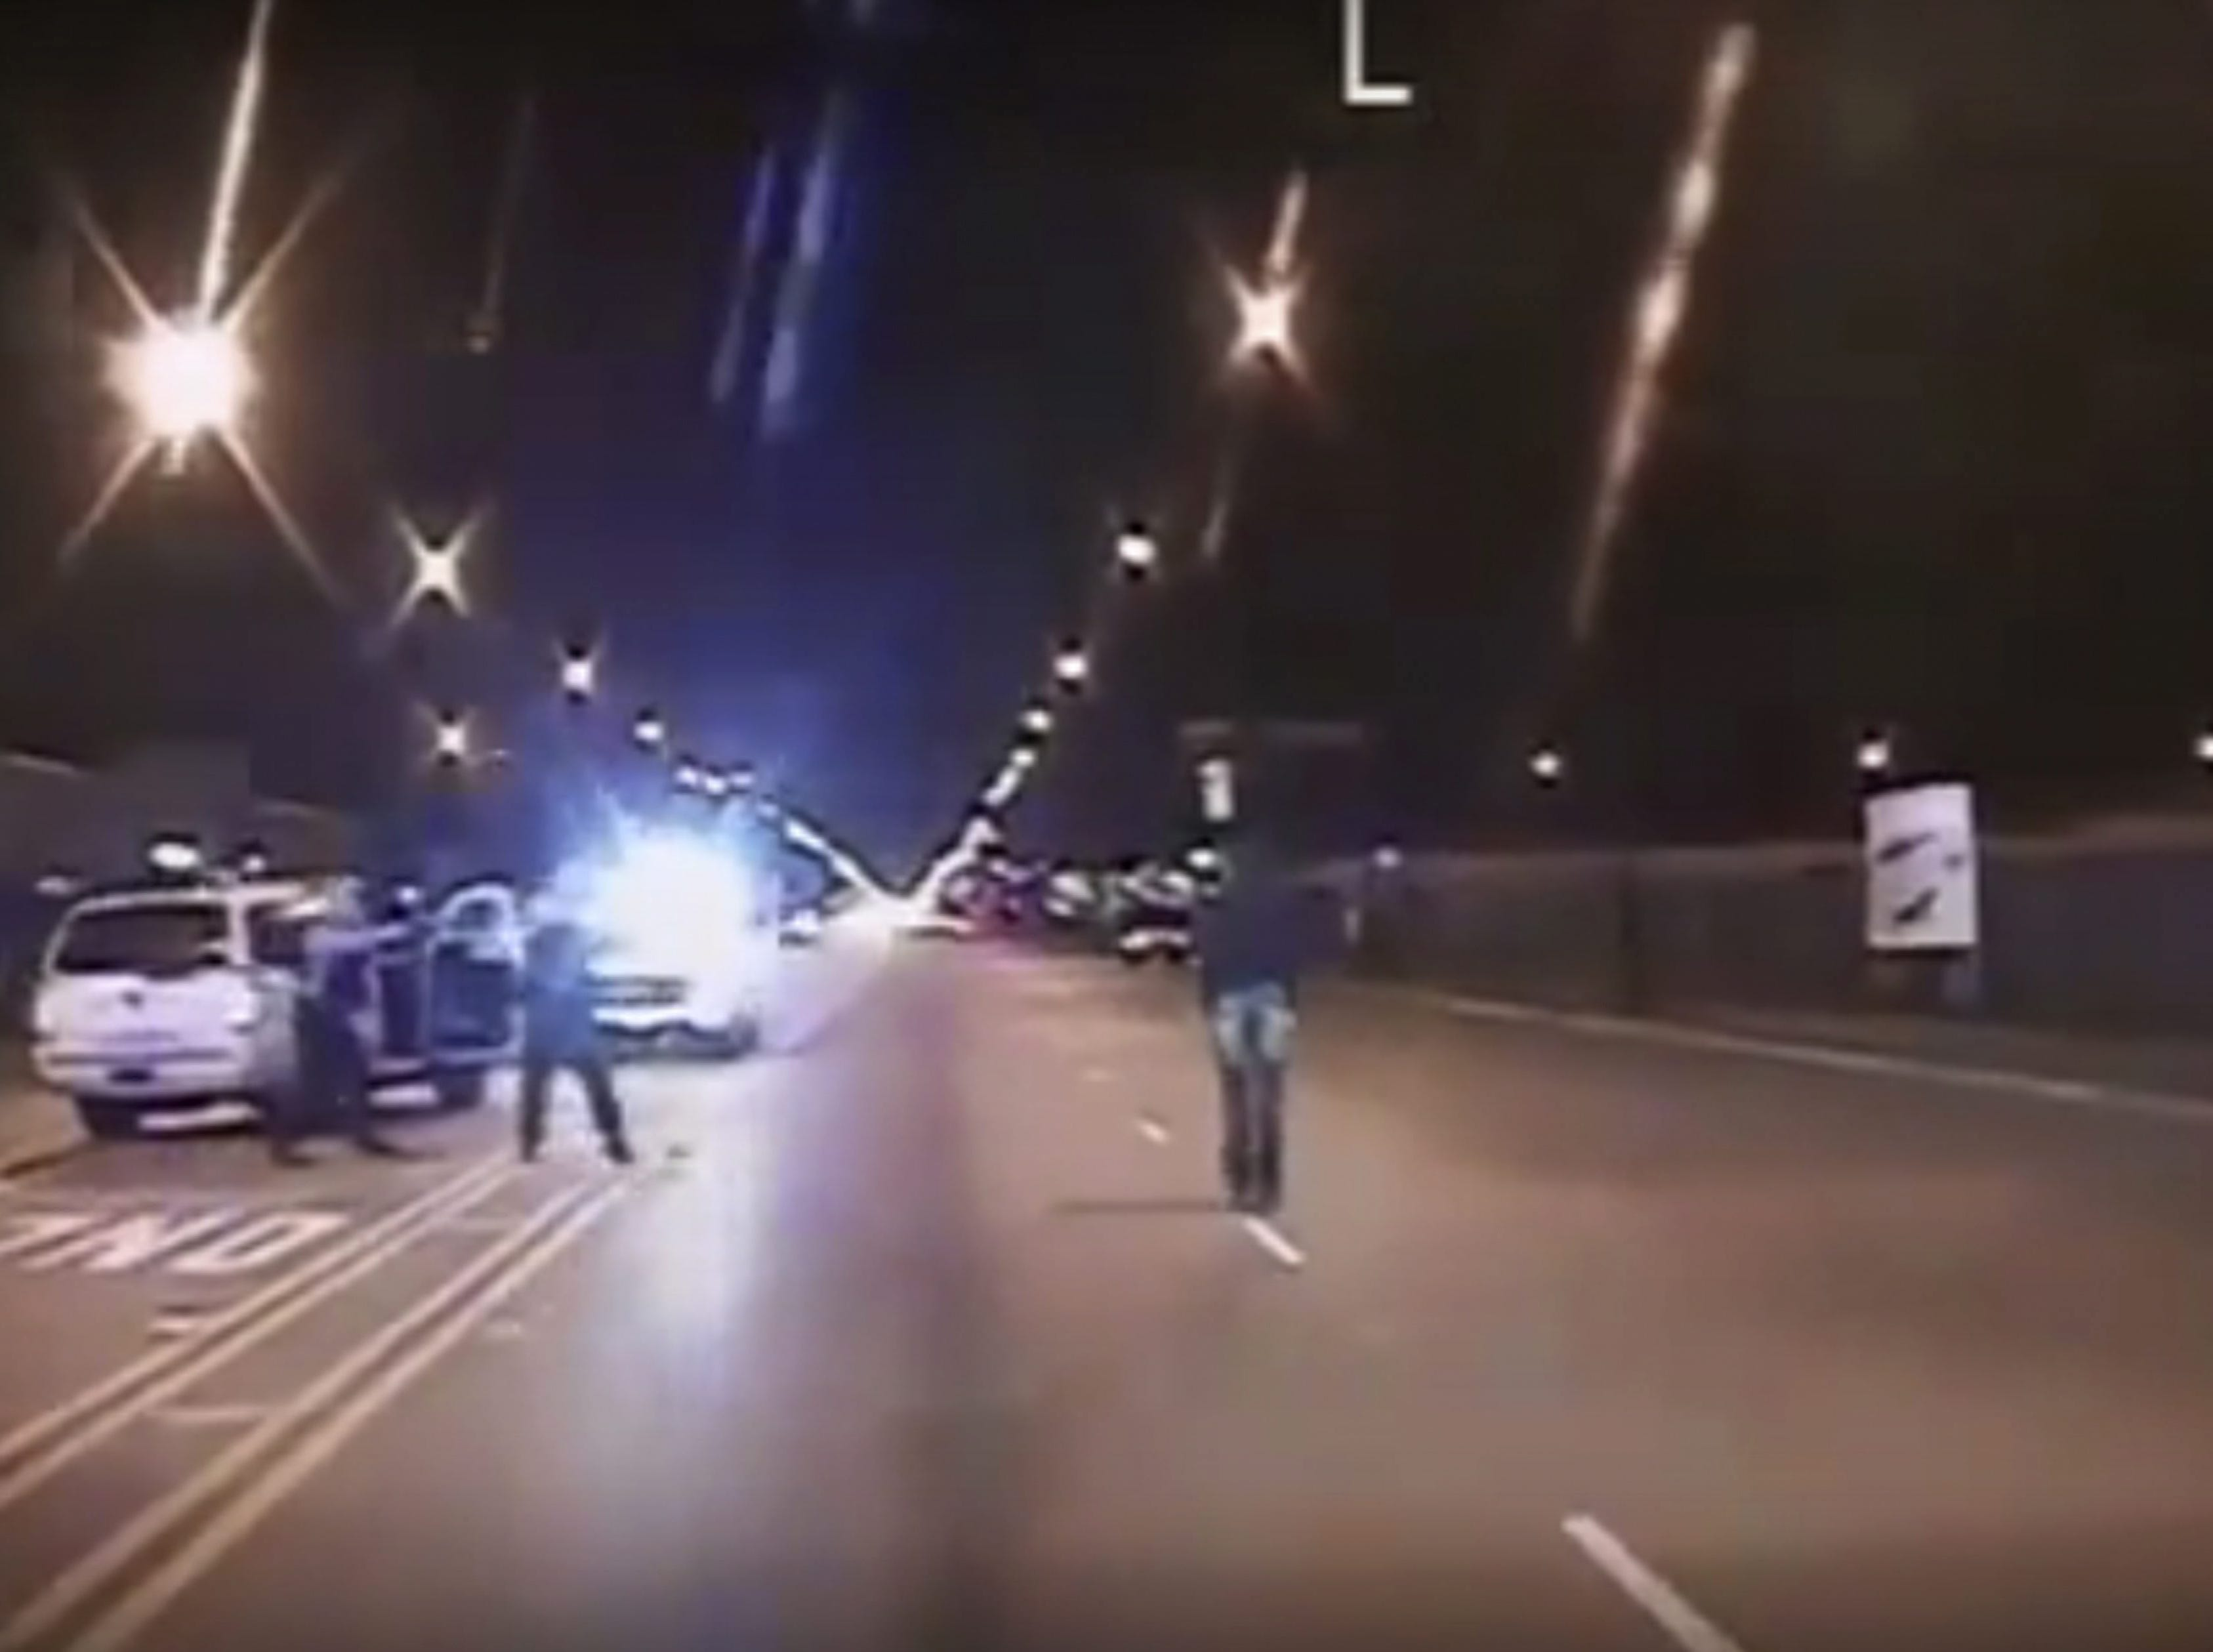 A frame grab from a dash cam video released by the Chicago Police on Nov. 24, 2015 which shows the fatal shooting of 17 year-old Laquan McDonald, center, by Chicago police officers, left, in Chicago, Ill. Oct. 20, 2014. Chicago police officer Jason Van Dyke was charged with first-degree murder on Nov. 24, 2015. He allegedly shot Laquan McDonald 16 times, continuing fire after the teenager fell to the ground, and stopped only after another police officer told him to do so. A police video of the shooting was released on 24 November, and the police force had ordered officers to prepare for possible protests, the Chicago Tribune newspaper reported. Cook Country State's Attorney Anita Alvarez had taken more than a year to investigate the incident before filing the murder charge, but said she moved to file charges ahead of the video's release. Van Dyke has turned himself in and was being held without bail. The police union has said Van Dyke acted in fear of his life after McDonald lunged at him with a knife.